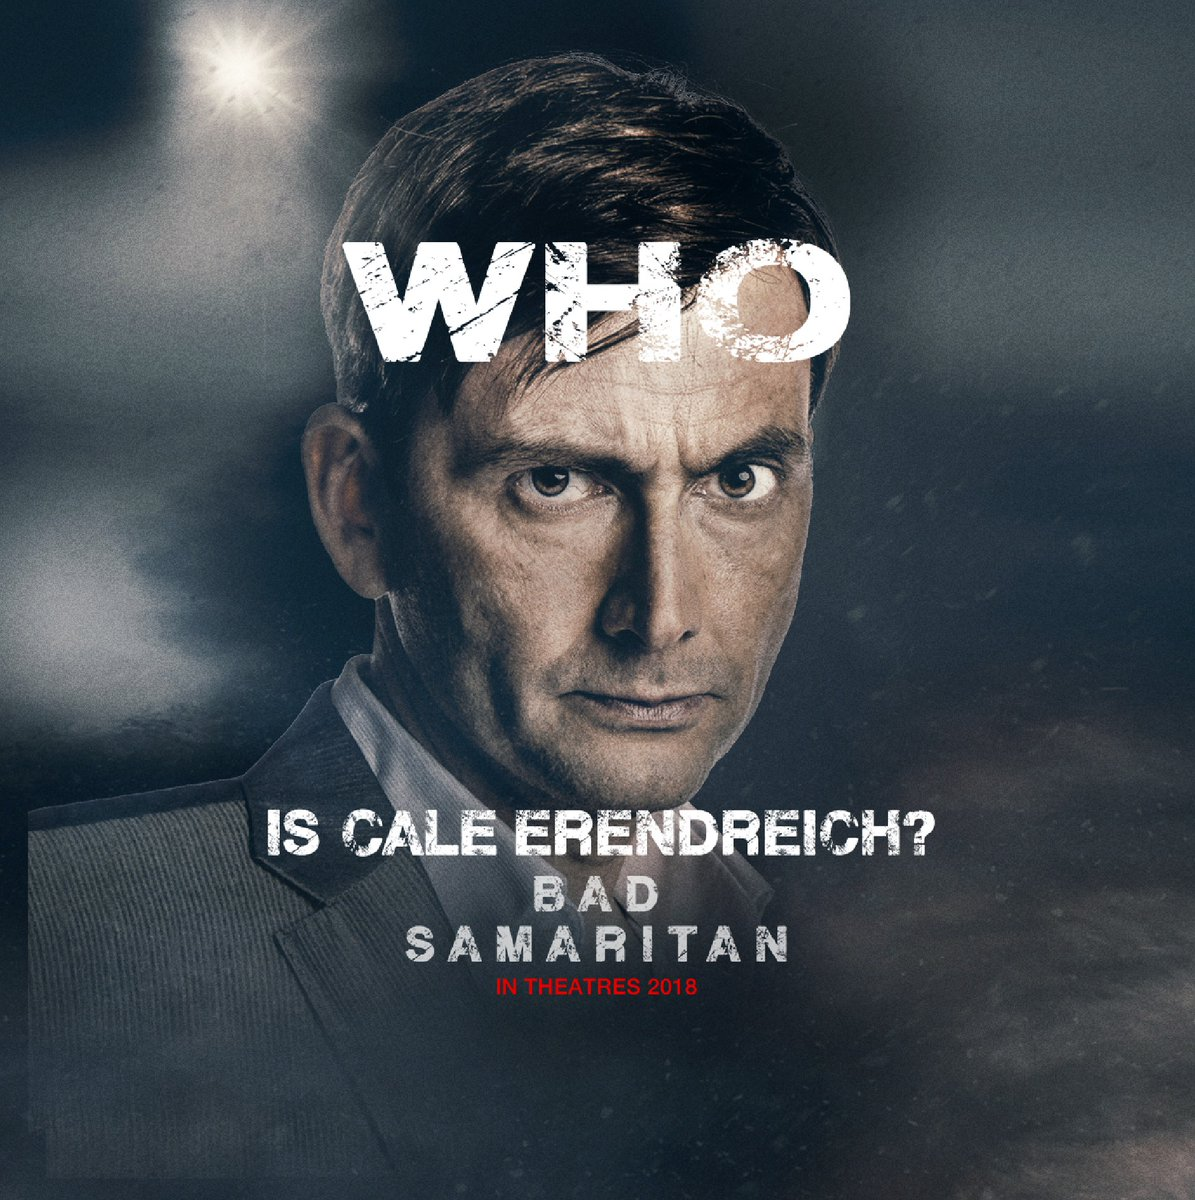 Promo graphic of David Tennant for Bad Samaritan